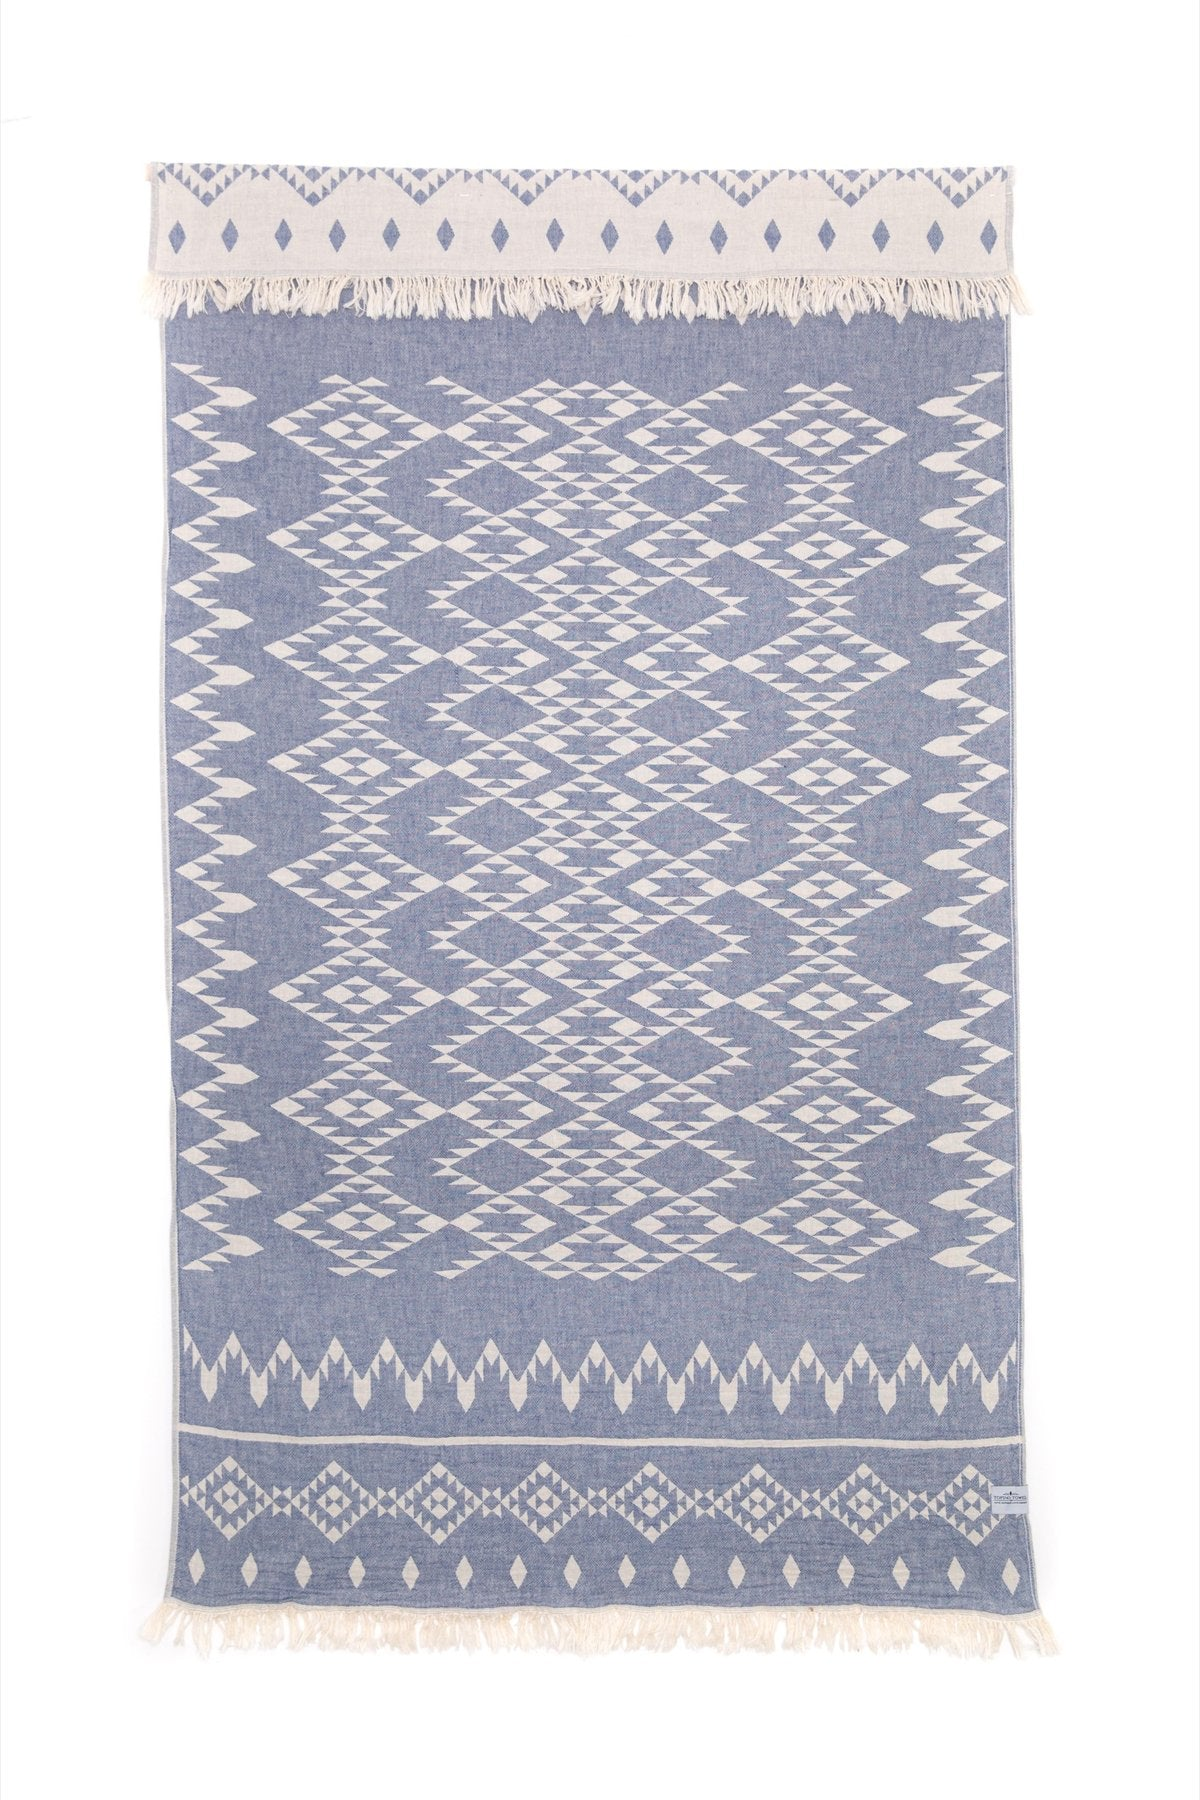 Tofino Towel - Coastal Towel